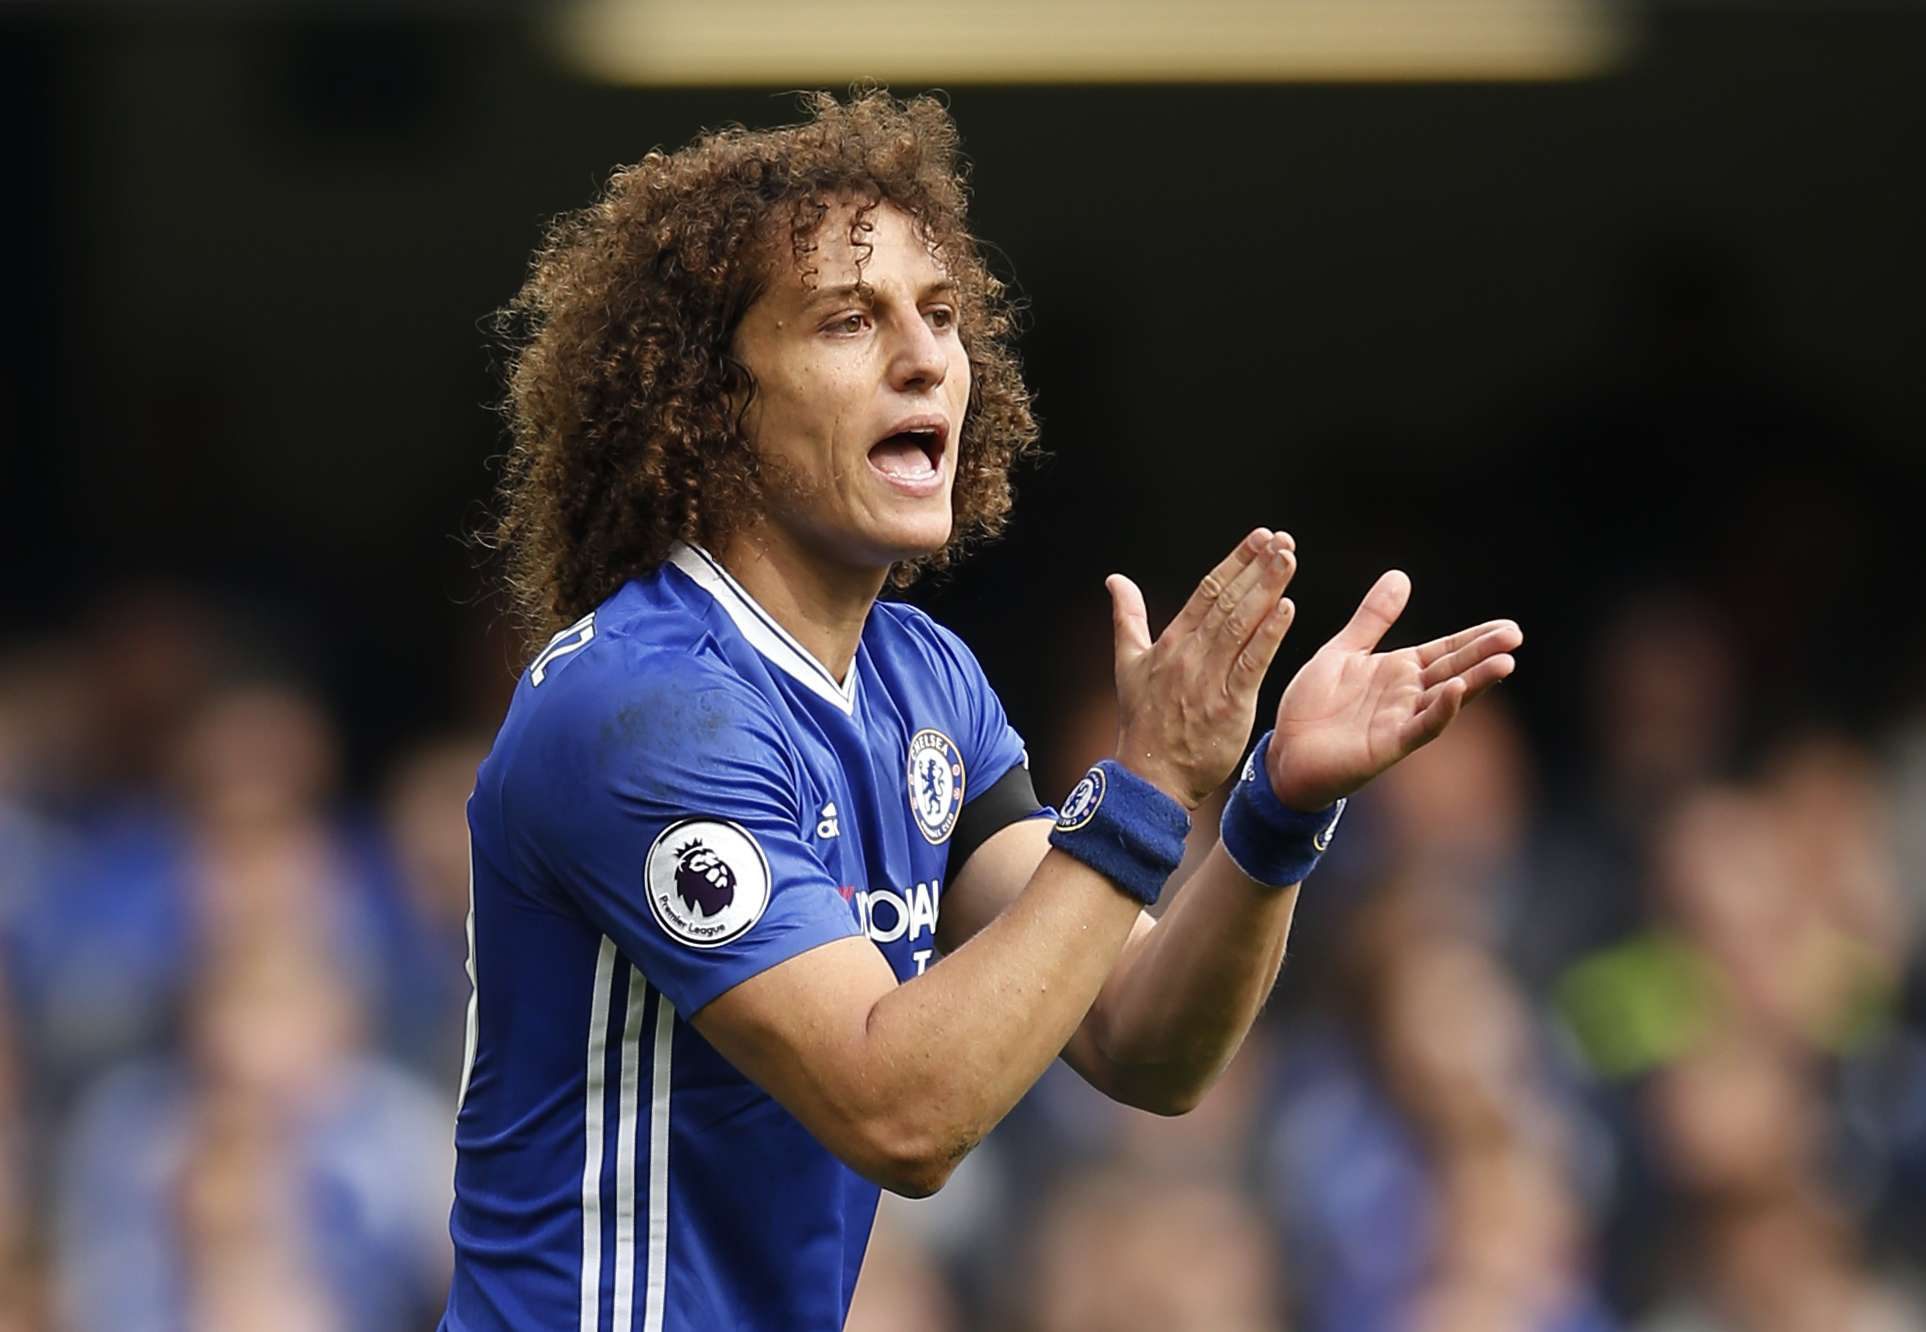 David Luiz Wallpaper 15   1926 X 1332 stmednet 1926x1332